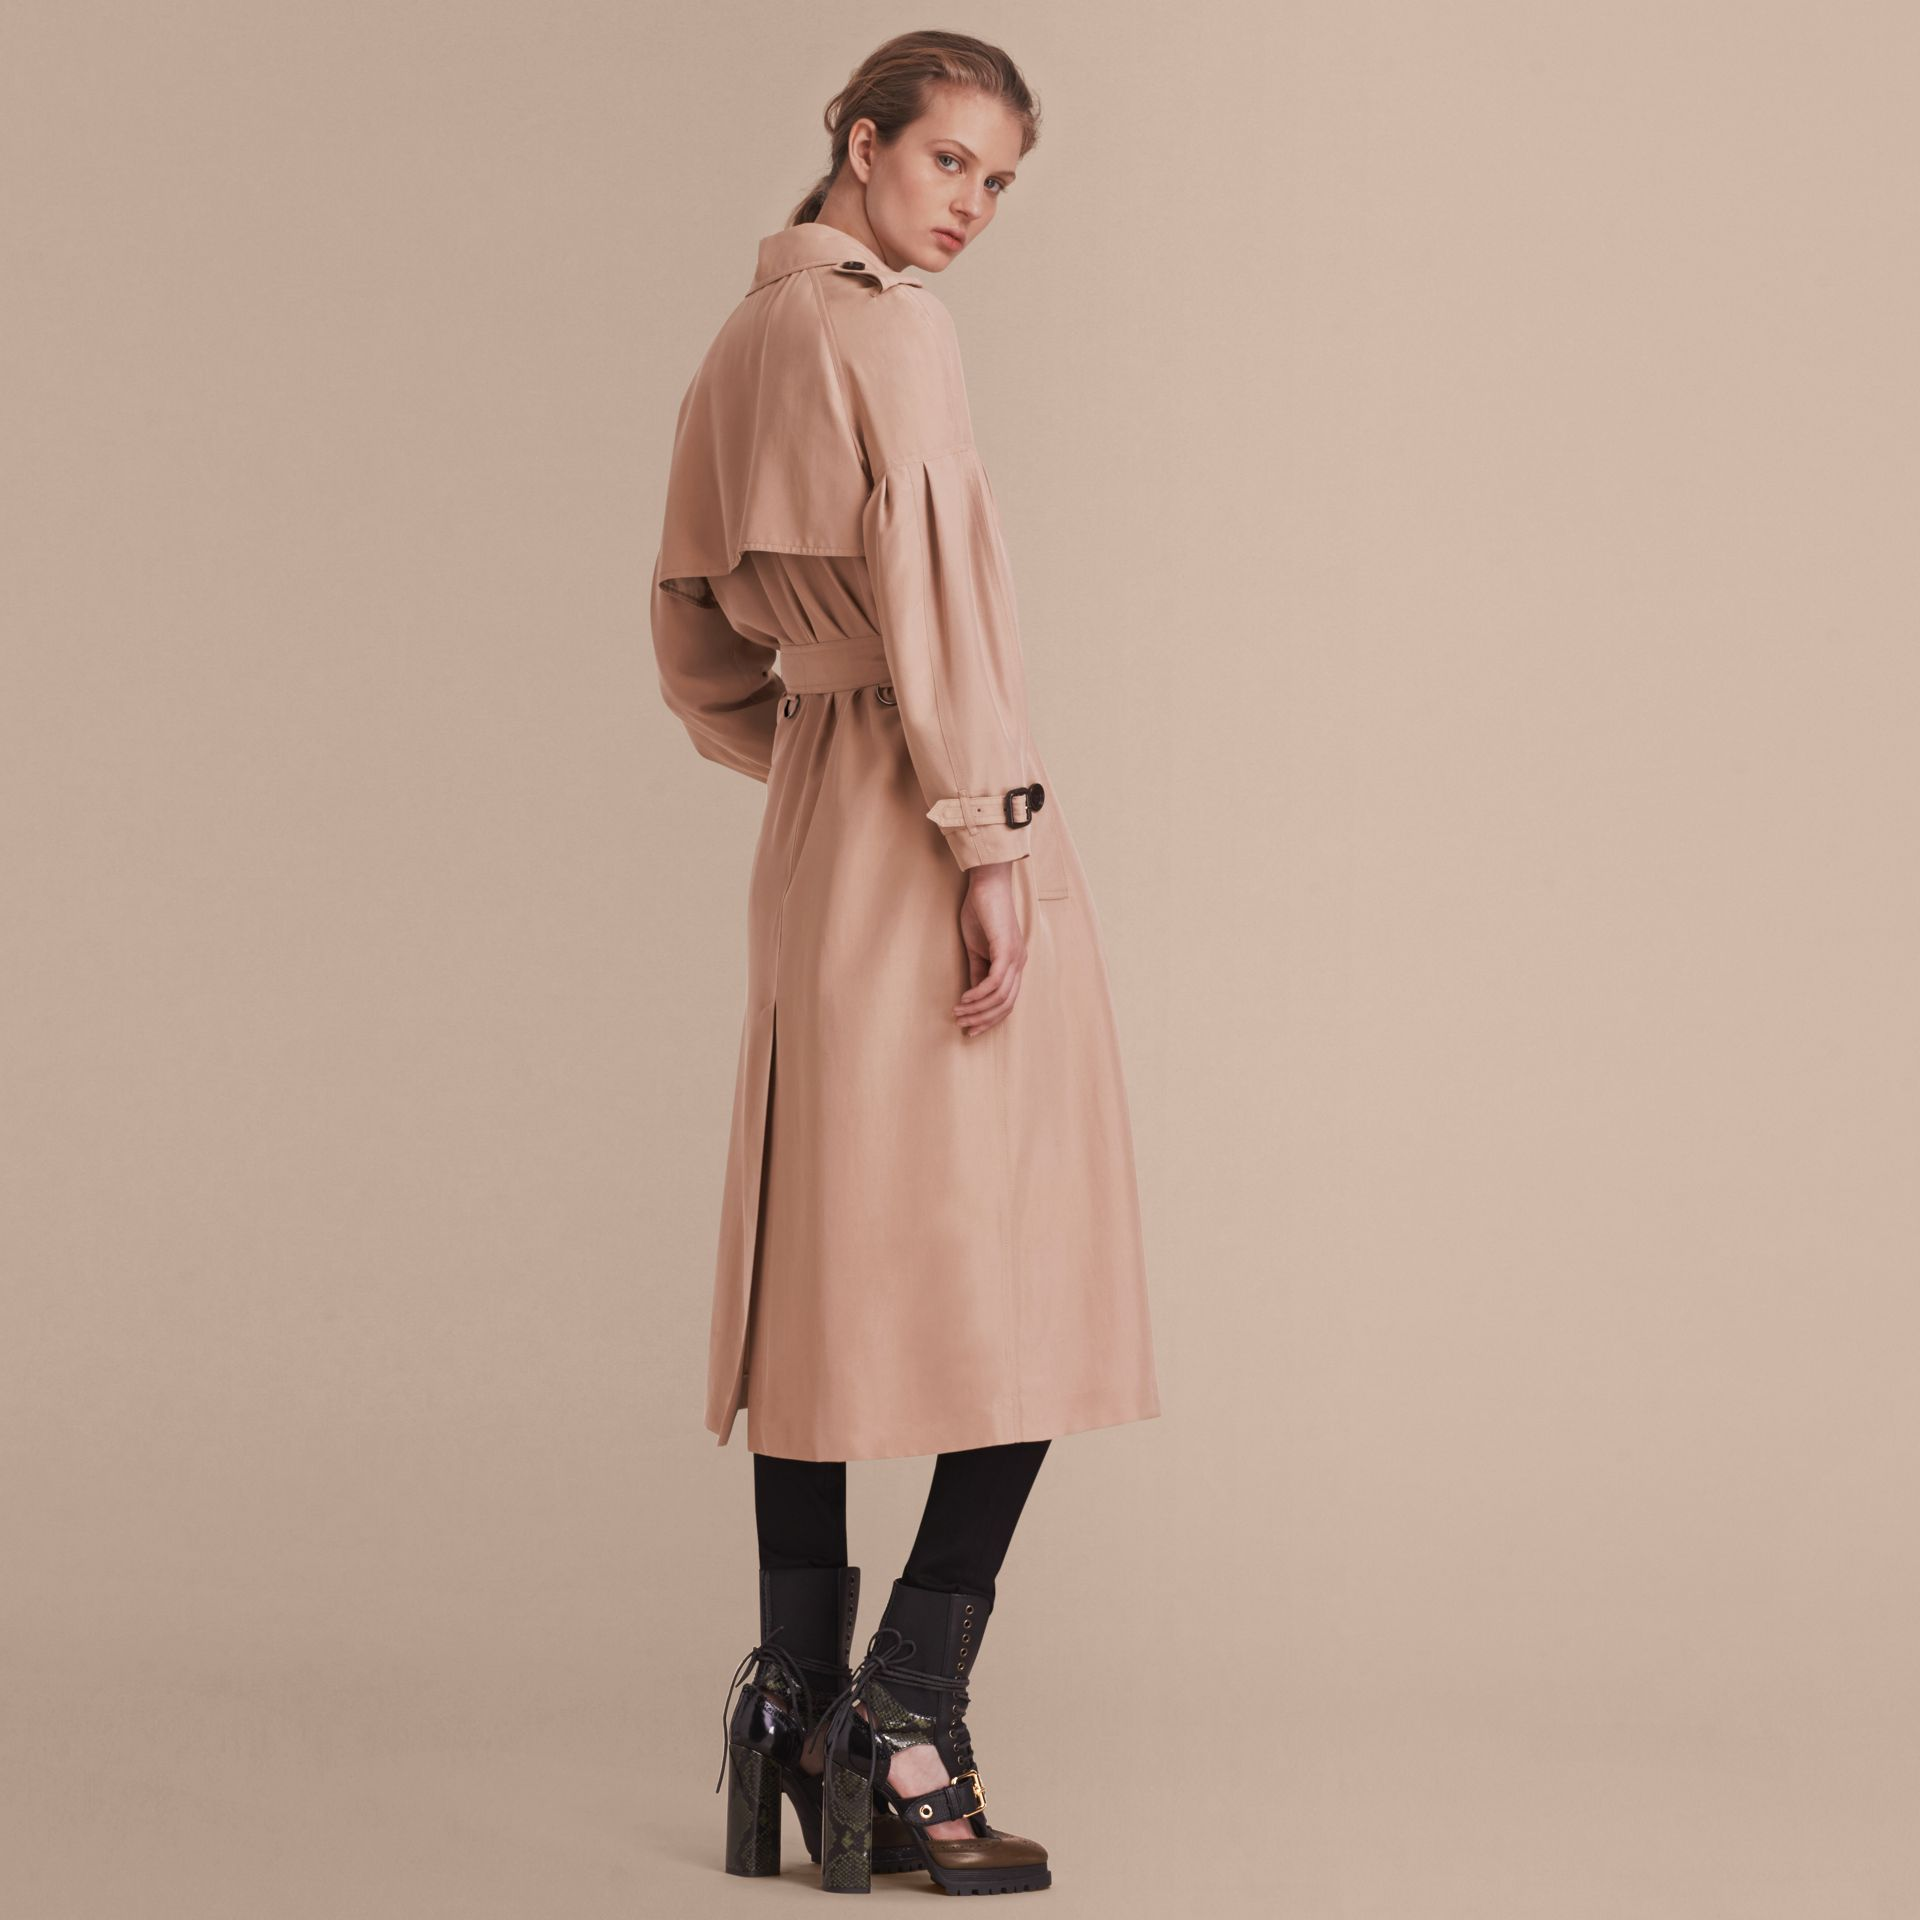 Oversize Silk Trench Coat with Puff Sleeves in Nude - gallery image 3